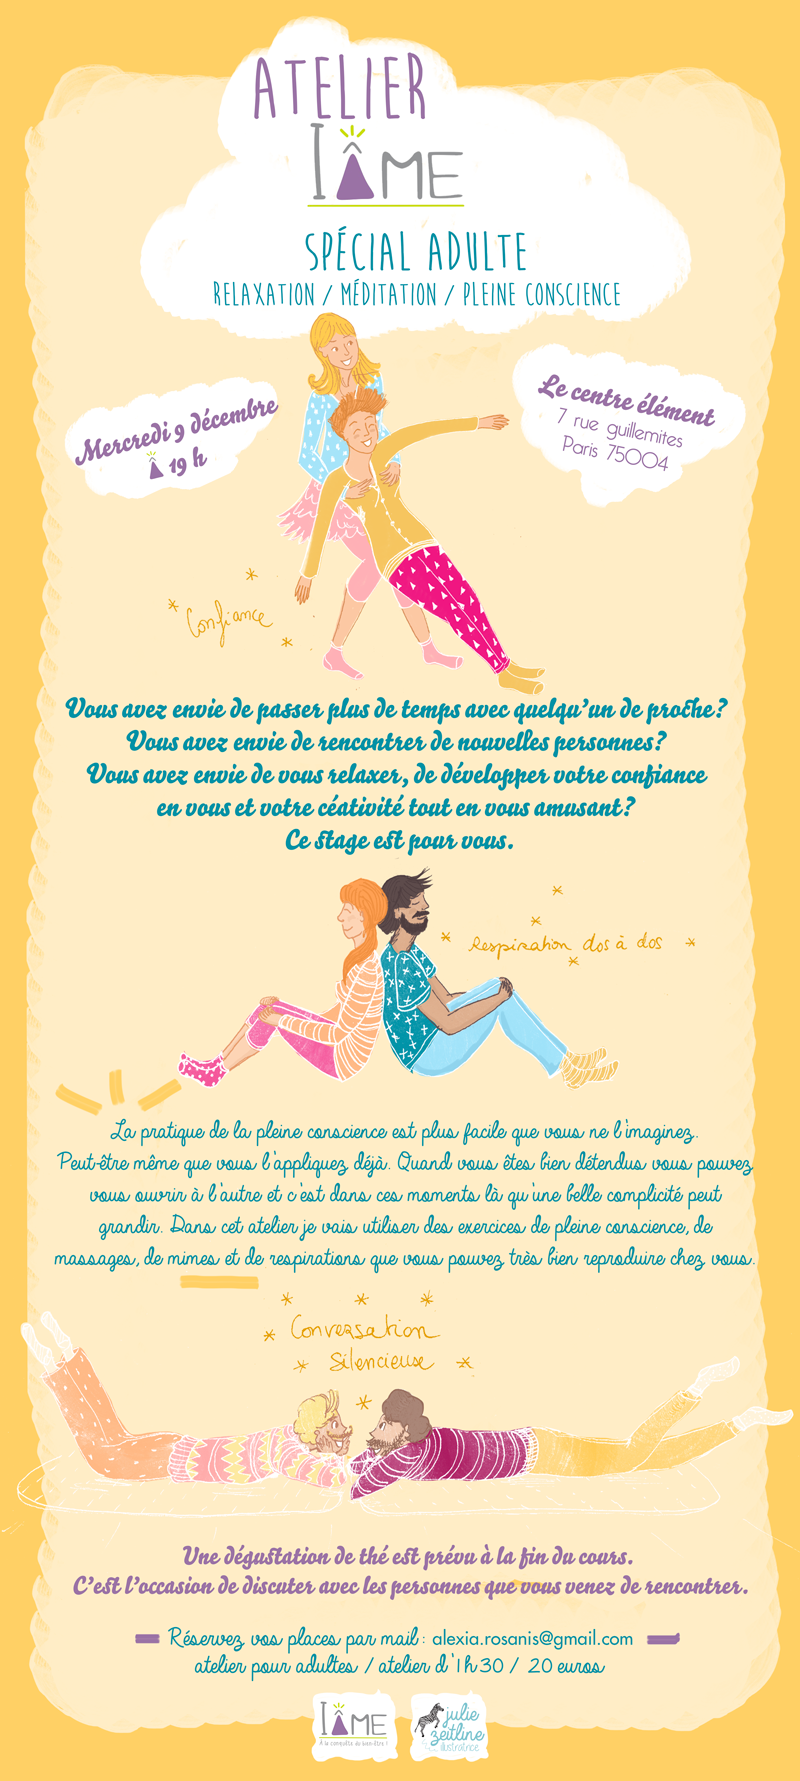 atelier-iame-à-deux-illustrations-julie-zeitline.png